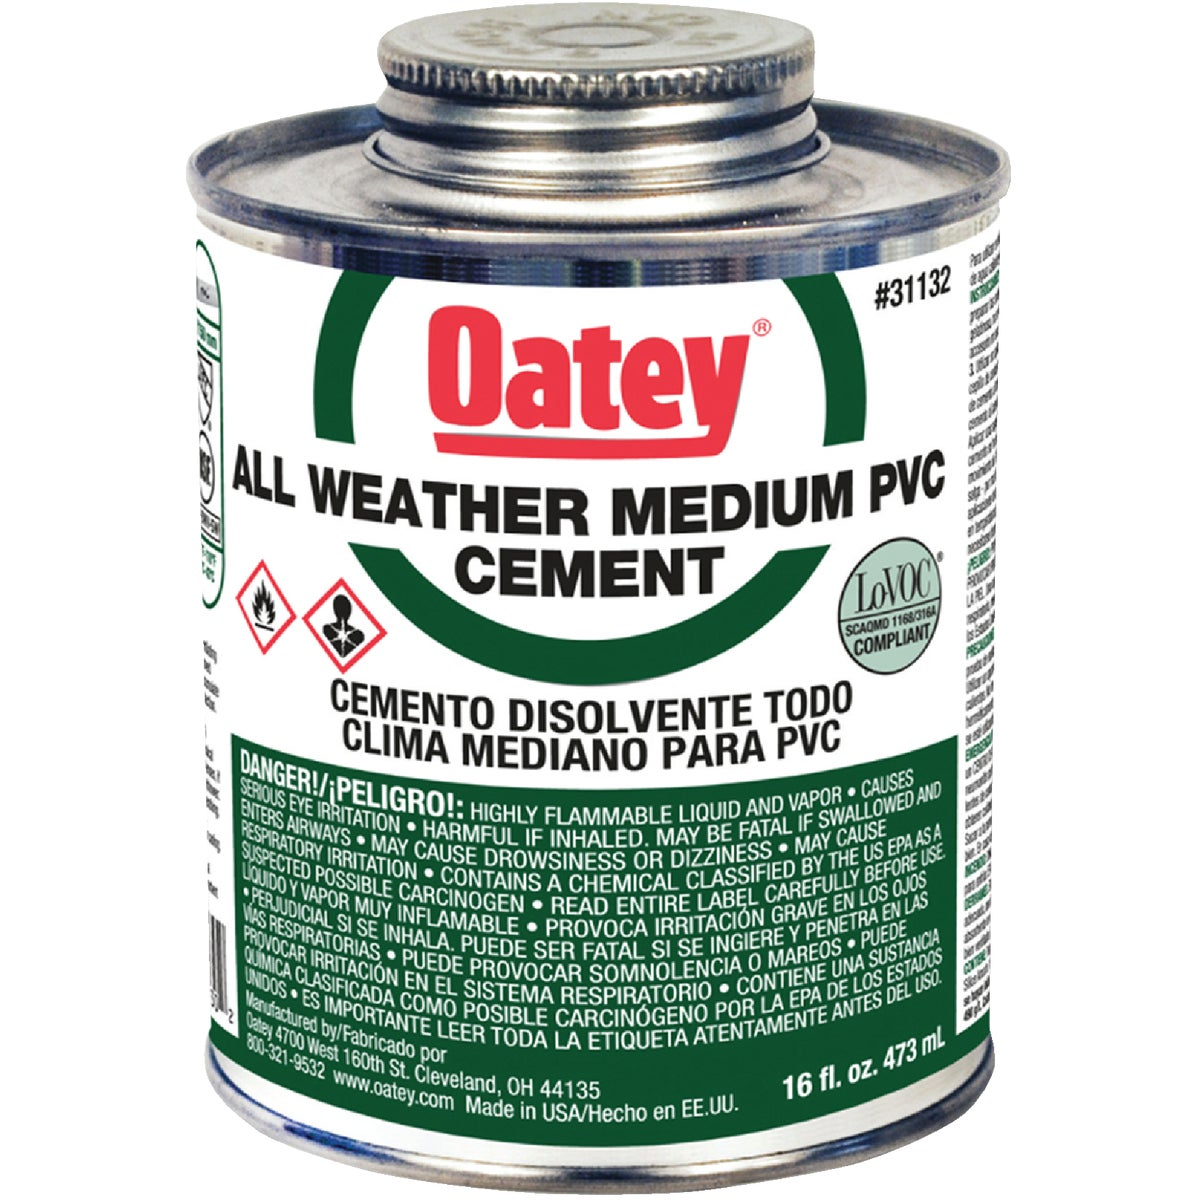 PINT PVC CEMENT - 31132 by Oatey Scs